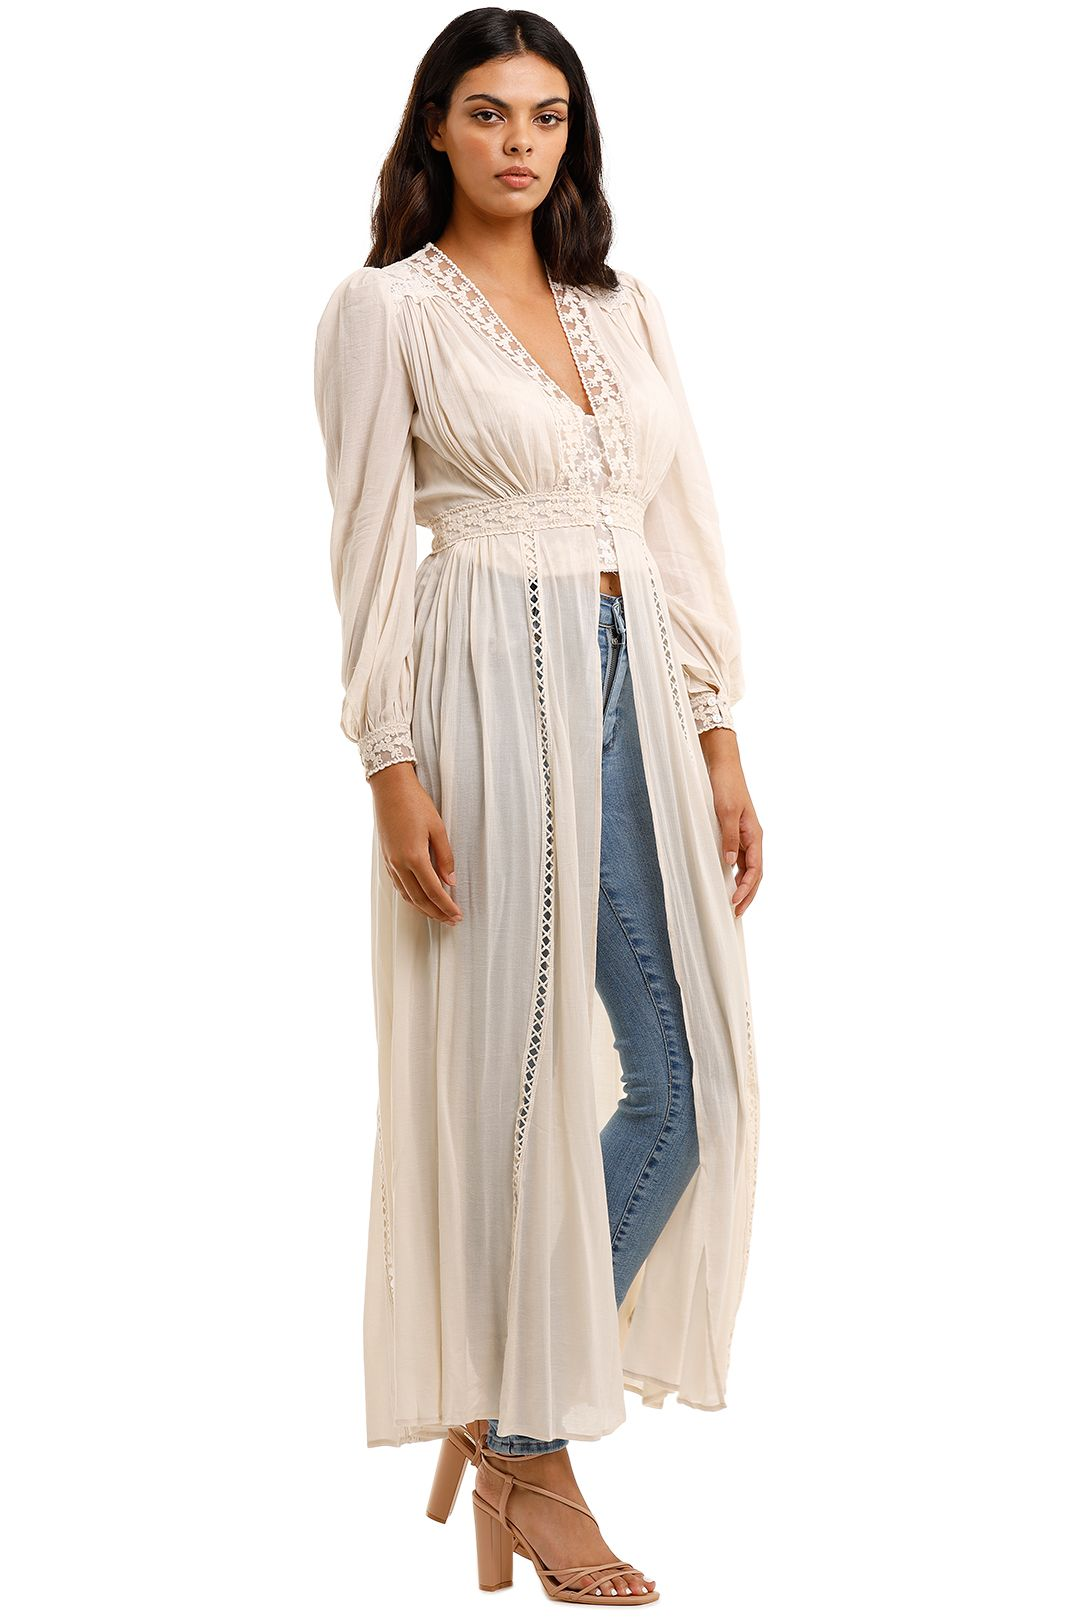 Spell Le Gauze Lace Duster Off White